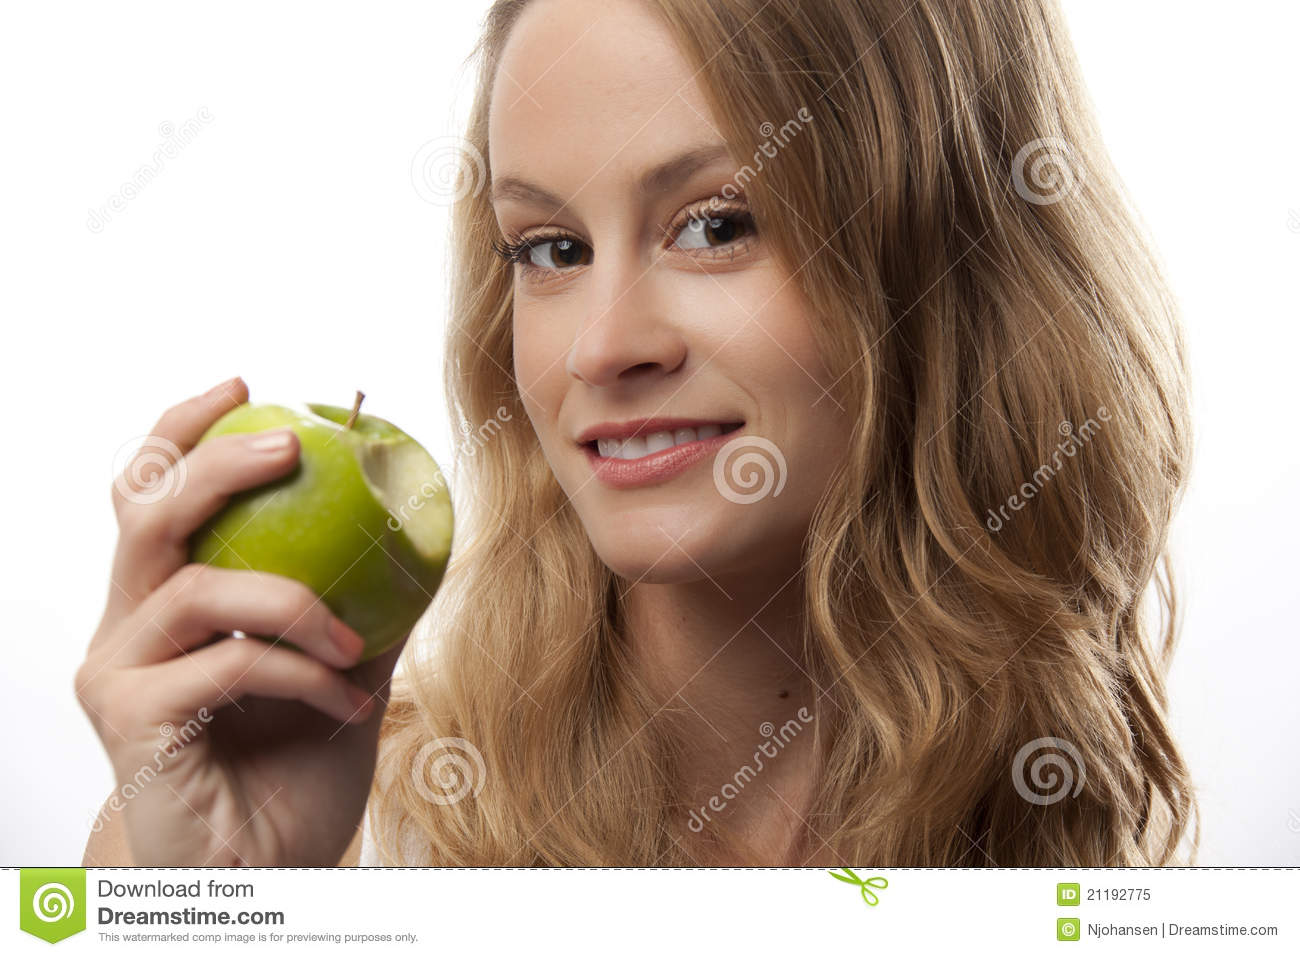 Woman with ripe green apple